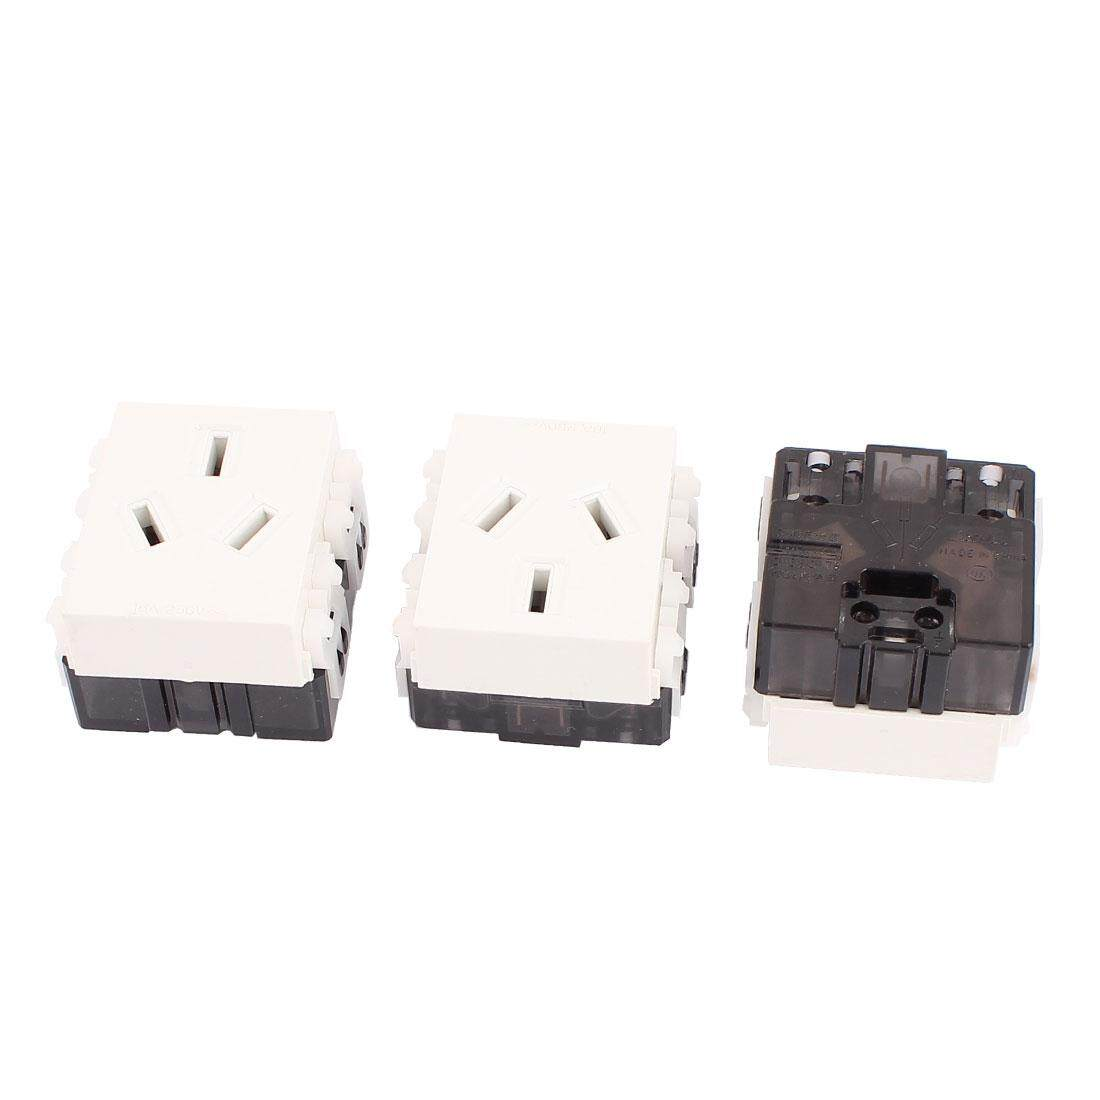 Sell Axa My2j Ac Cheapest Best Quality My Store Double Pole Throw Rocker Switchdoublepoles Myr 95